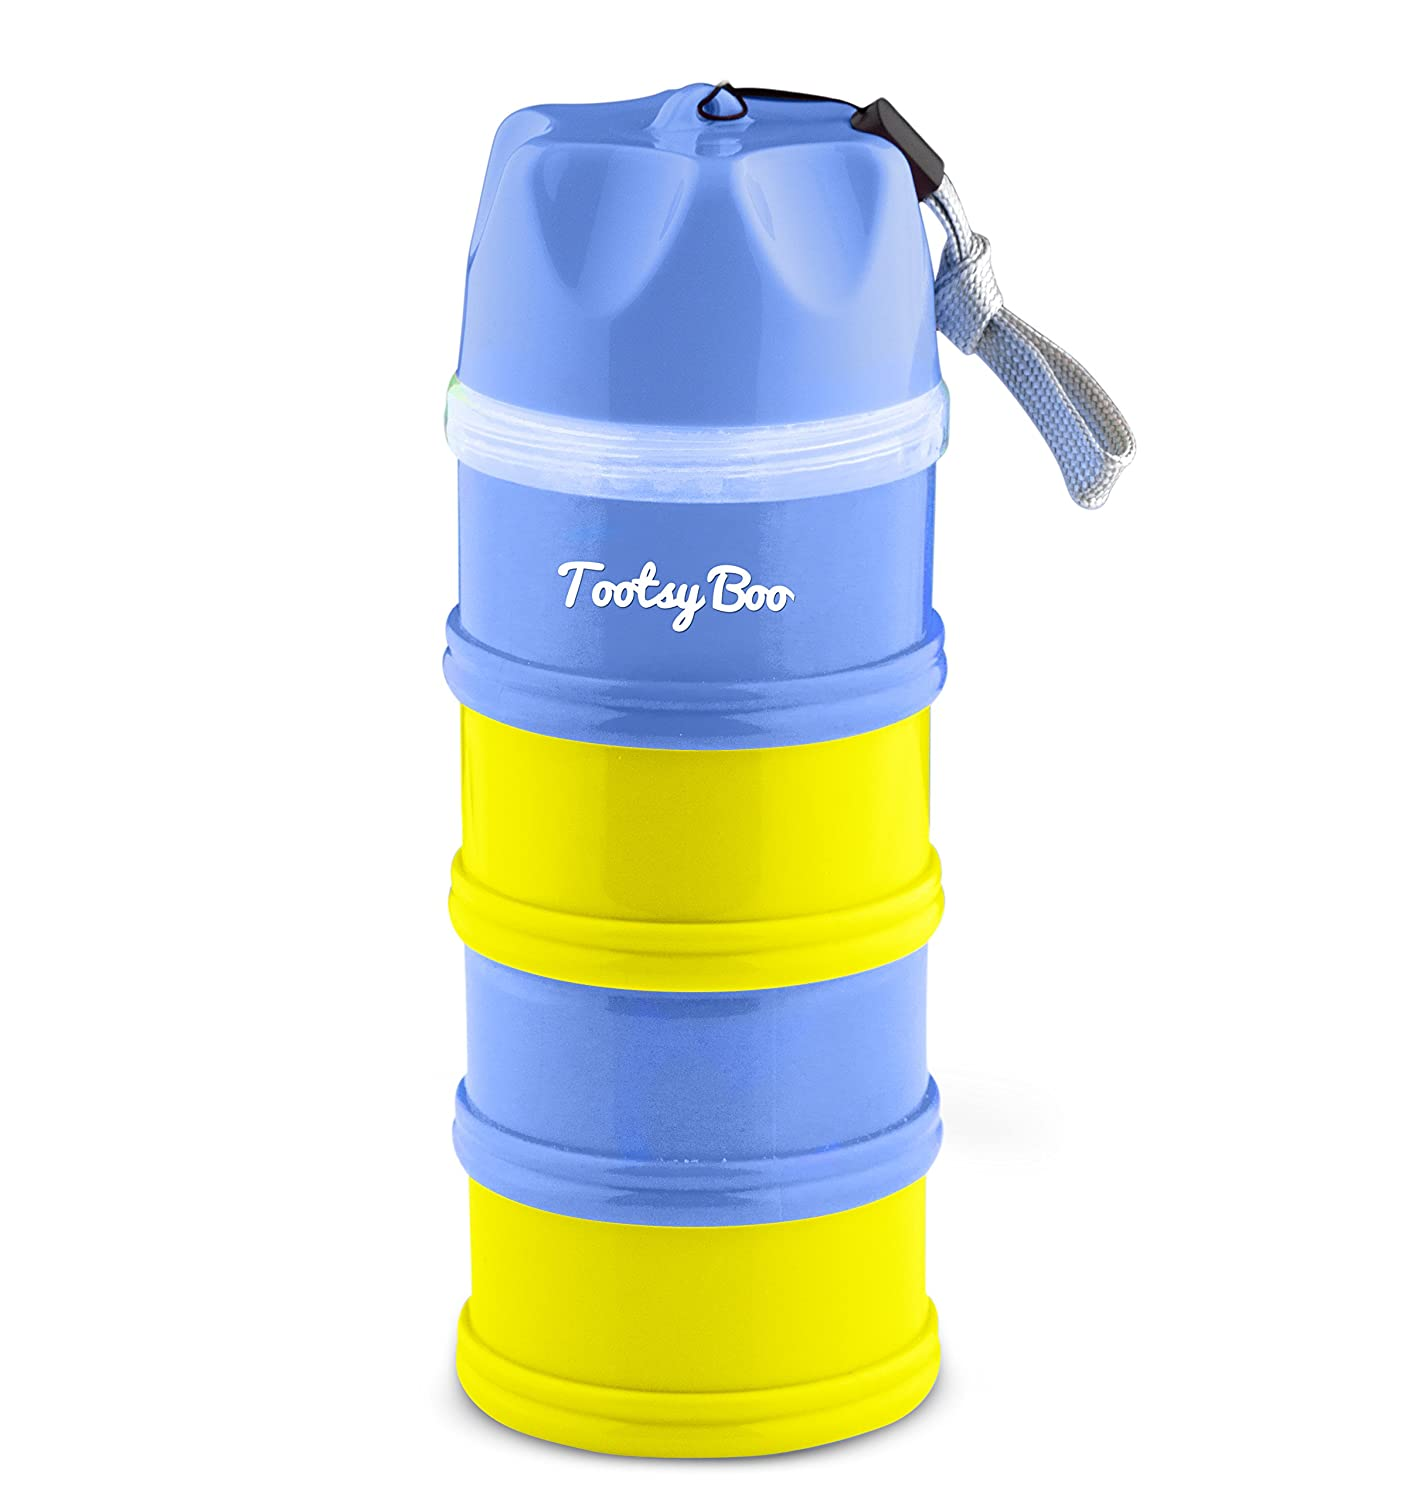 Tootsy Boo formula milk powder dispenser and snack container - 4 feeds, no powder leakage, 'strap on' to buggy handle for easy carry